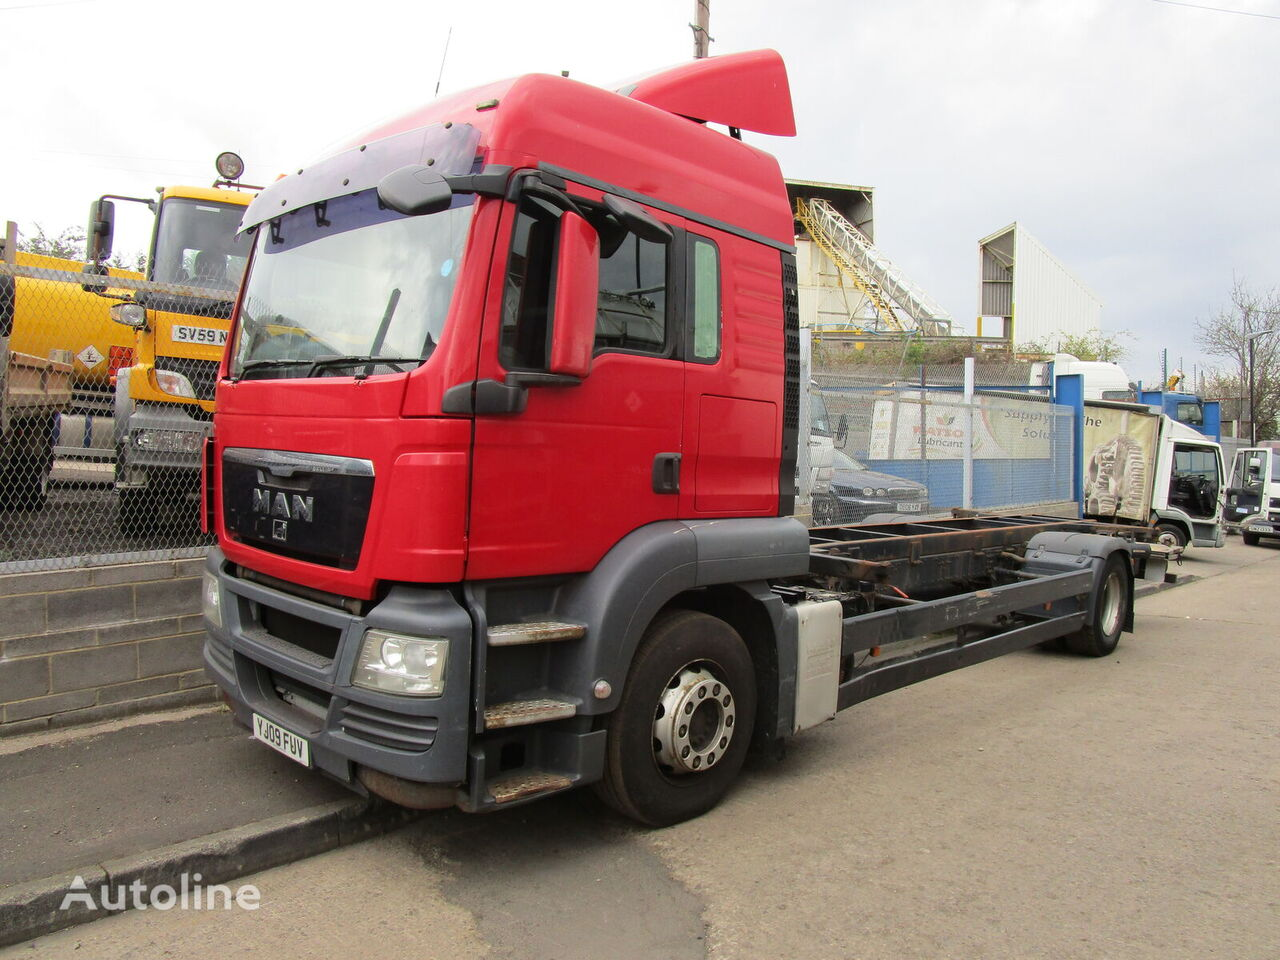 MAN TGS 360 chassis truck for parts